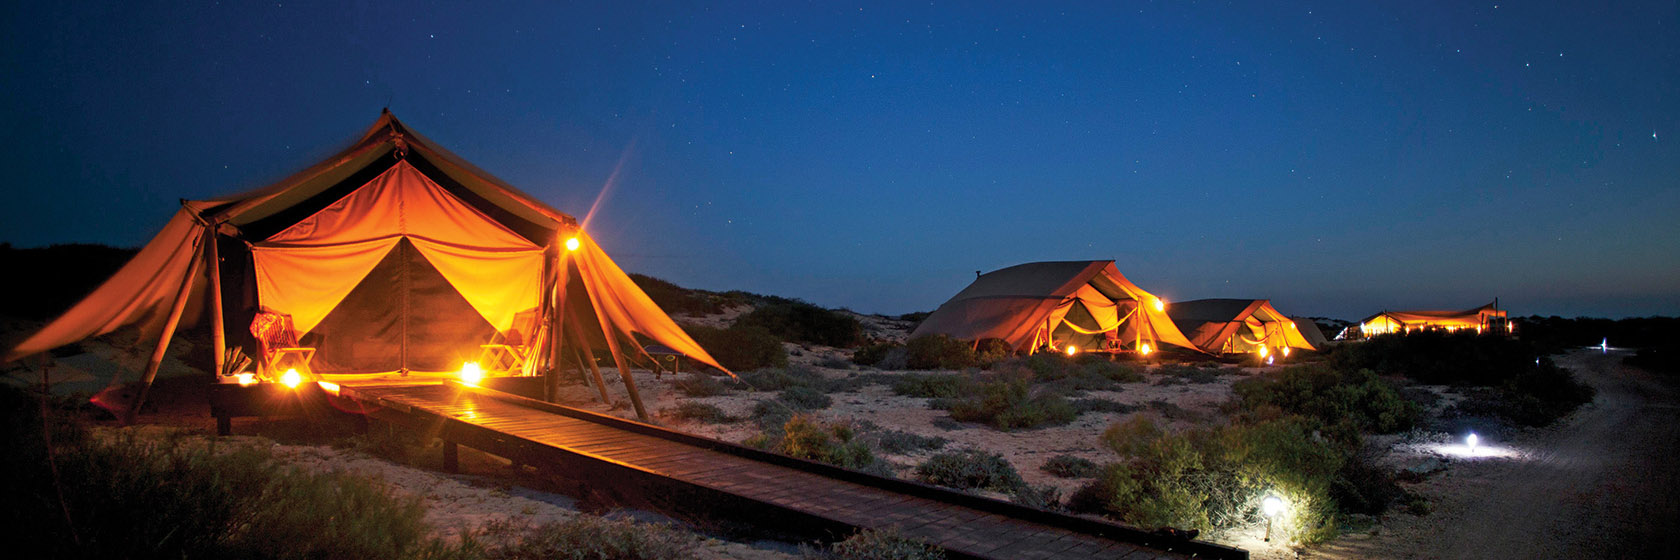 pristine-waters-of-ningaloo-reef-sal-salis-accommodation